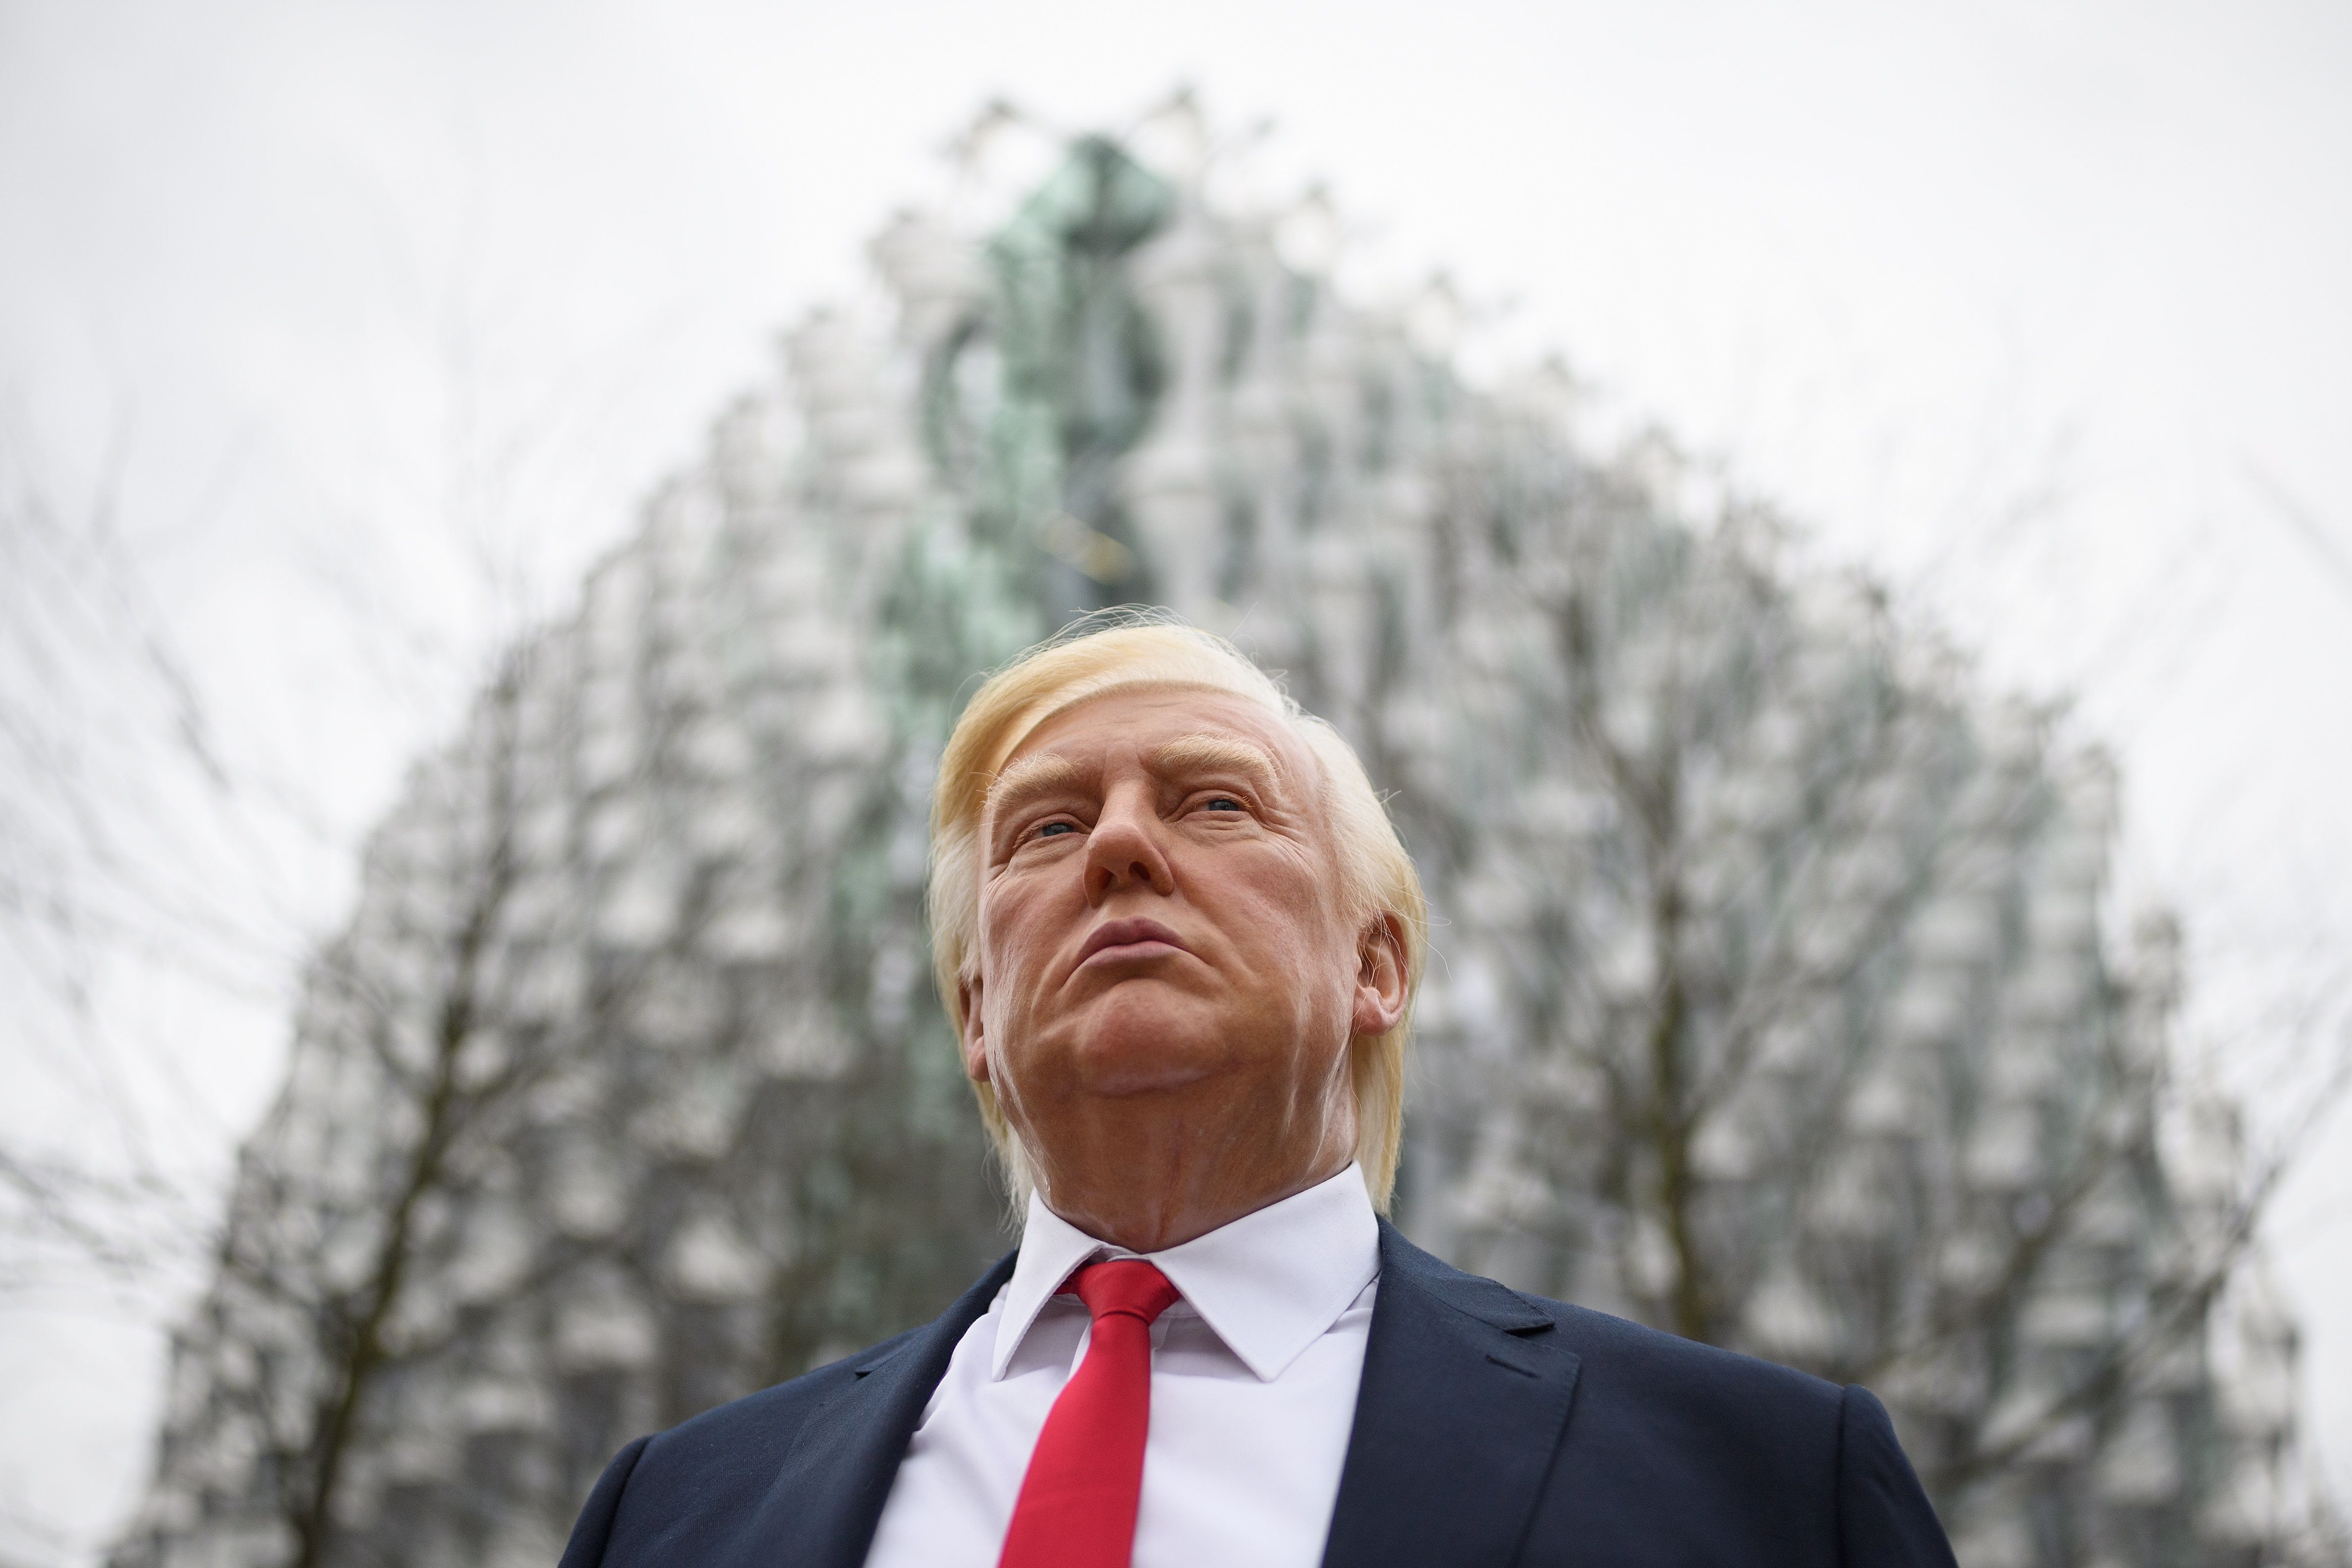 A model of President Donald Trump from Madame Tussauds waxwork attractions stands outside the new U.S. Embassy in London